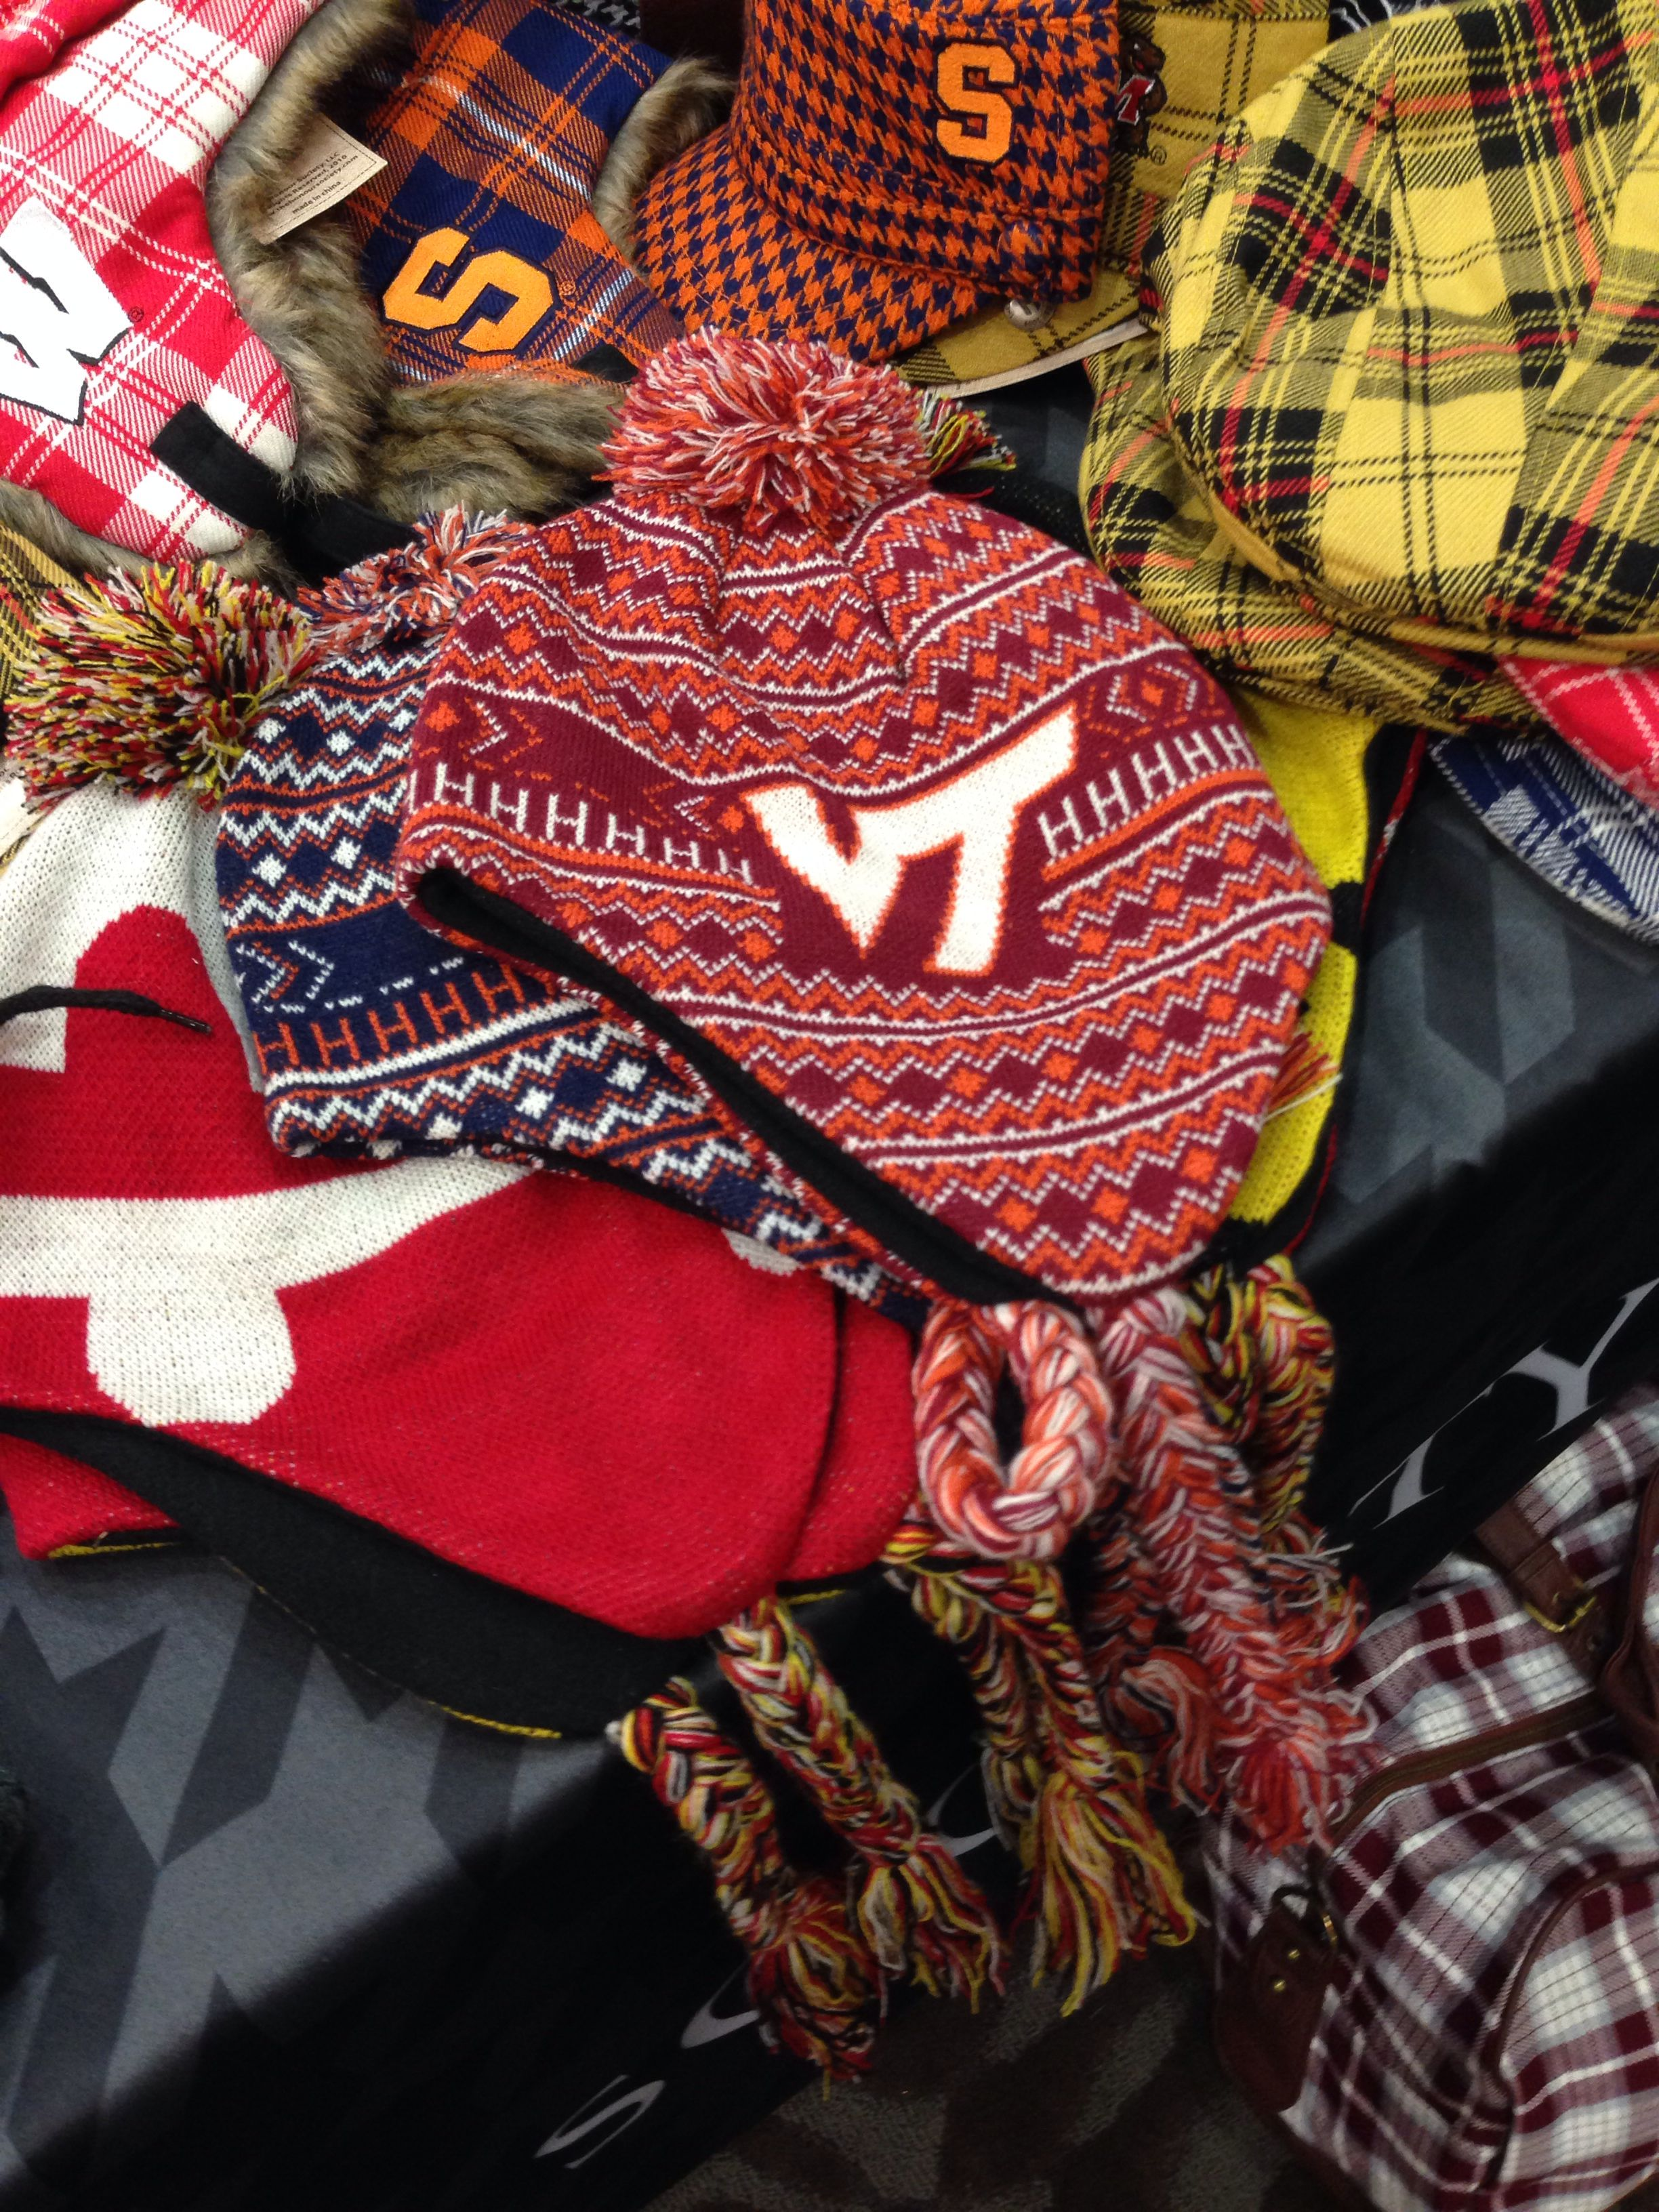 Norwegian Winter Ski Hats Come In A Range Of Schools And Colors And Two Patterns The Original And The Varsity Stripe Winter Hats Ski Hats Stocking Stuffers